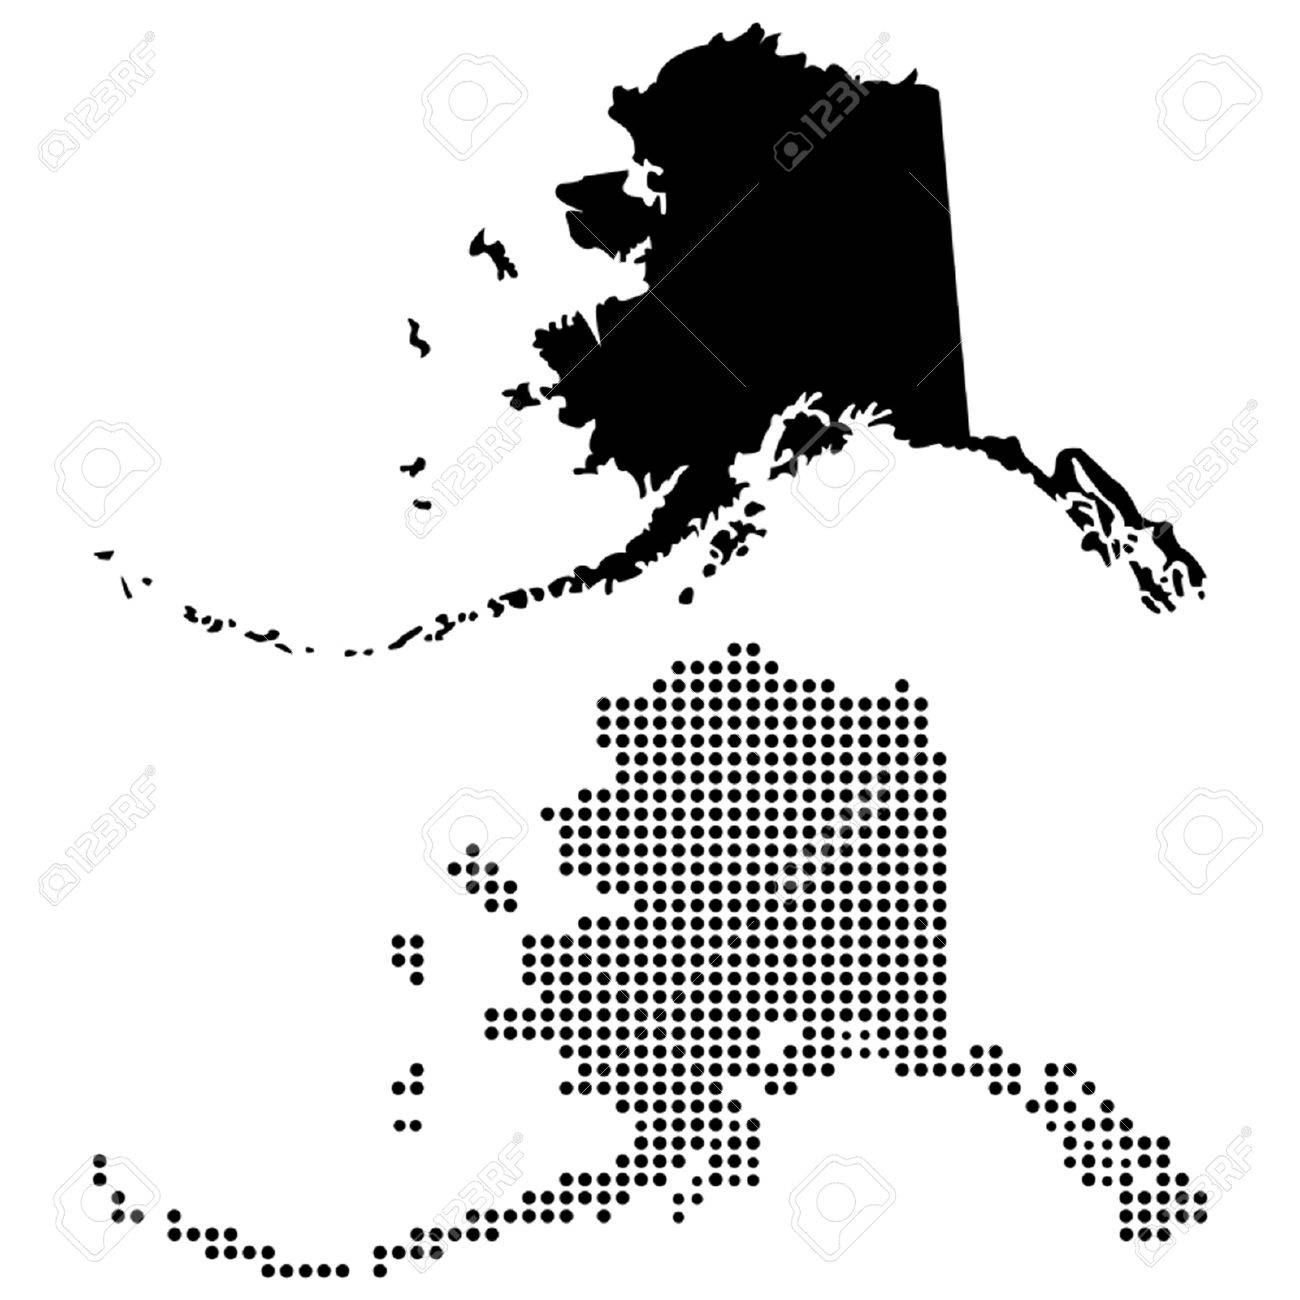 Dotted And Silhouette Alaska Map Royalty Free Cliparts Vectors And